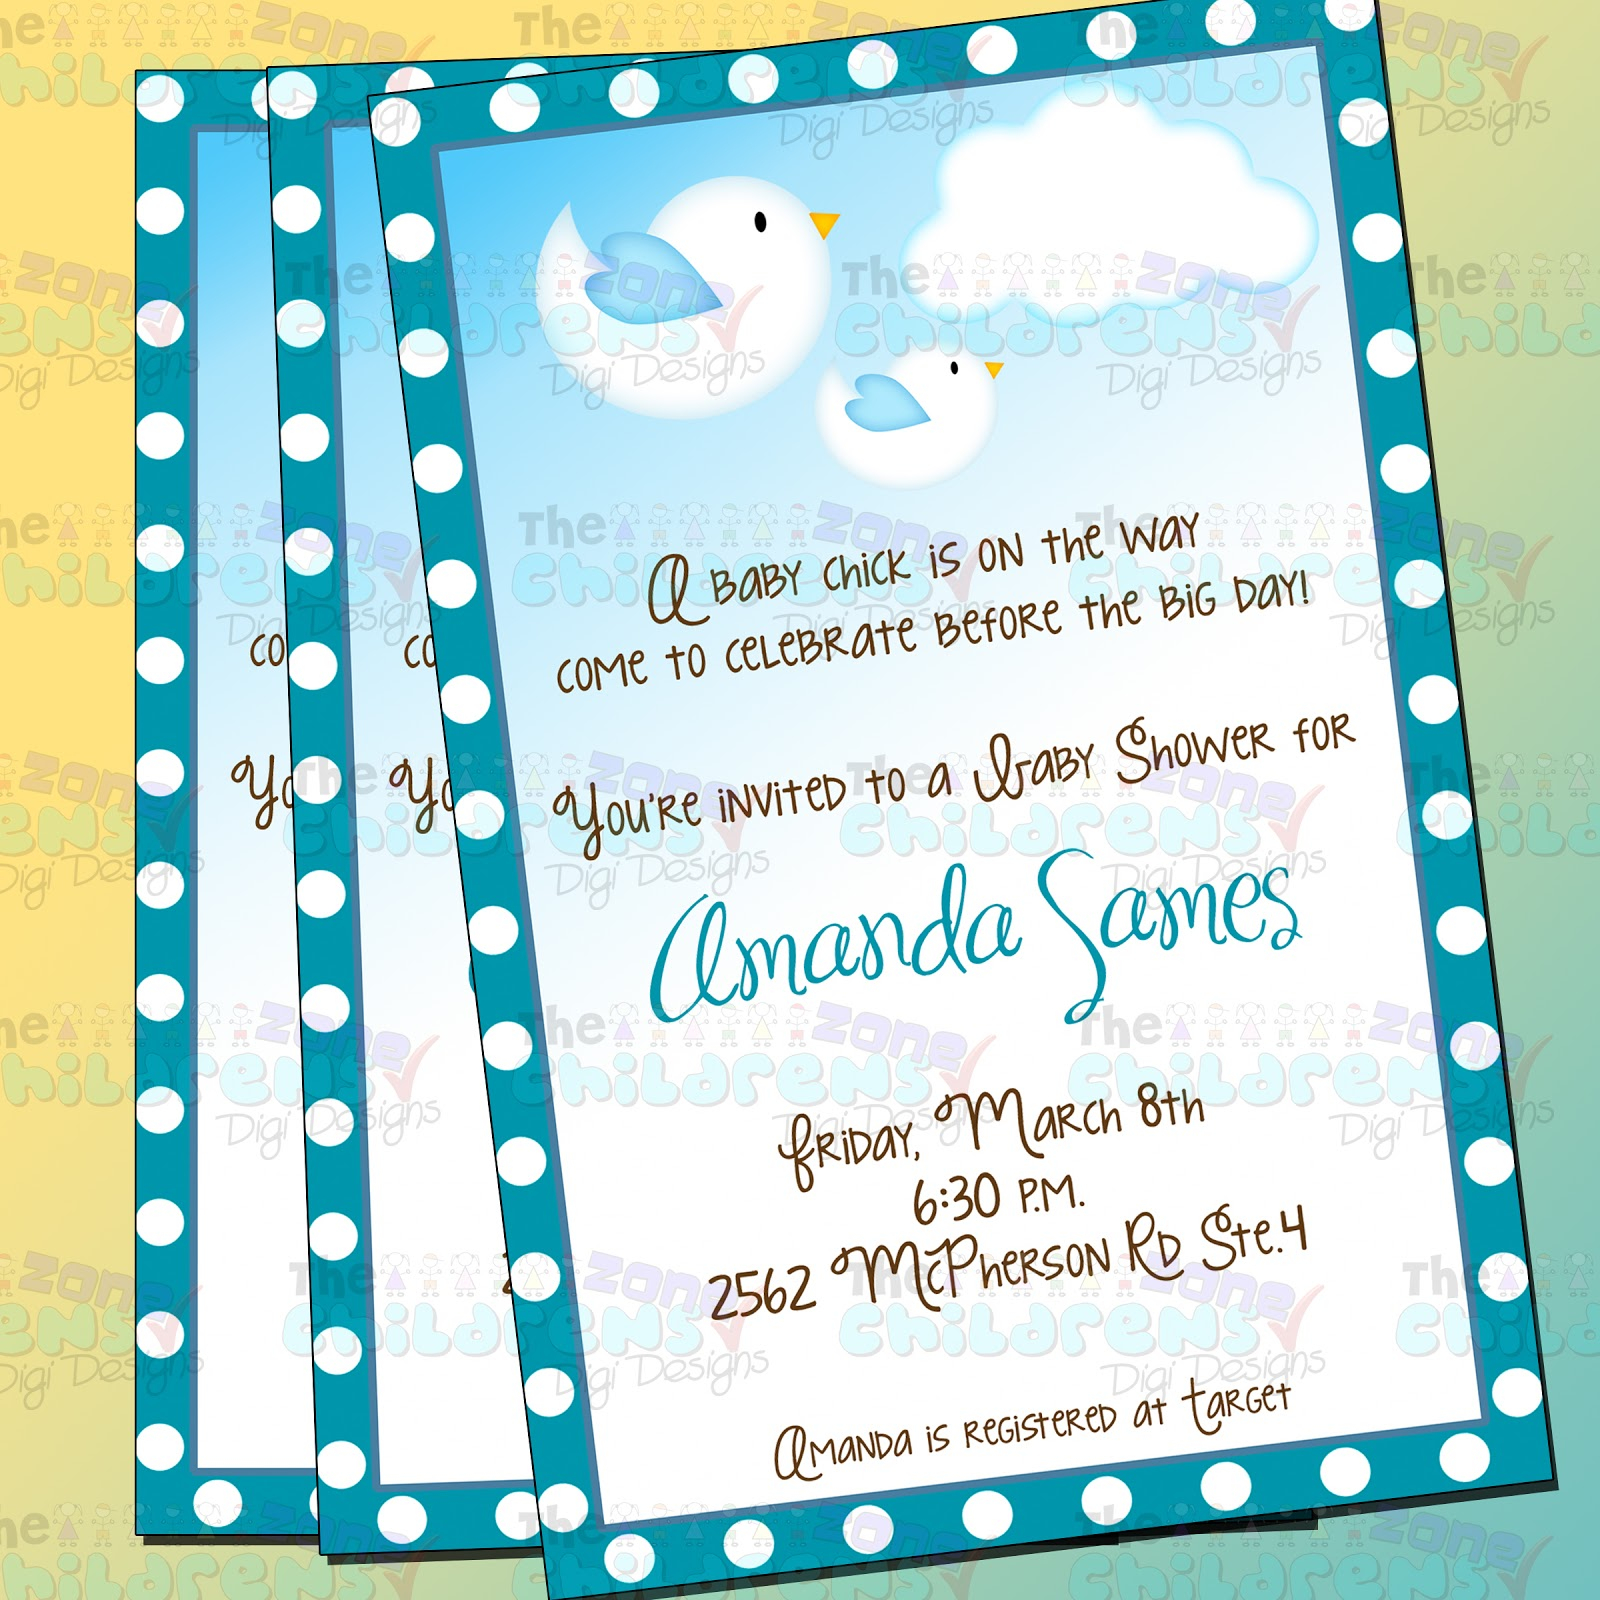 Fancy Well Invitaciones De Baby Shower Para Ni O 42 - Wyllieforgovernor throughout Invitaciones Para Baby Shower De Niño